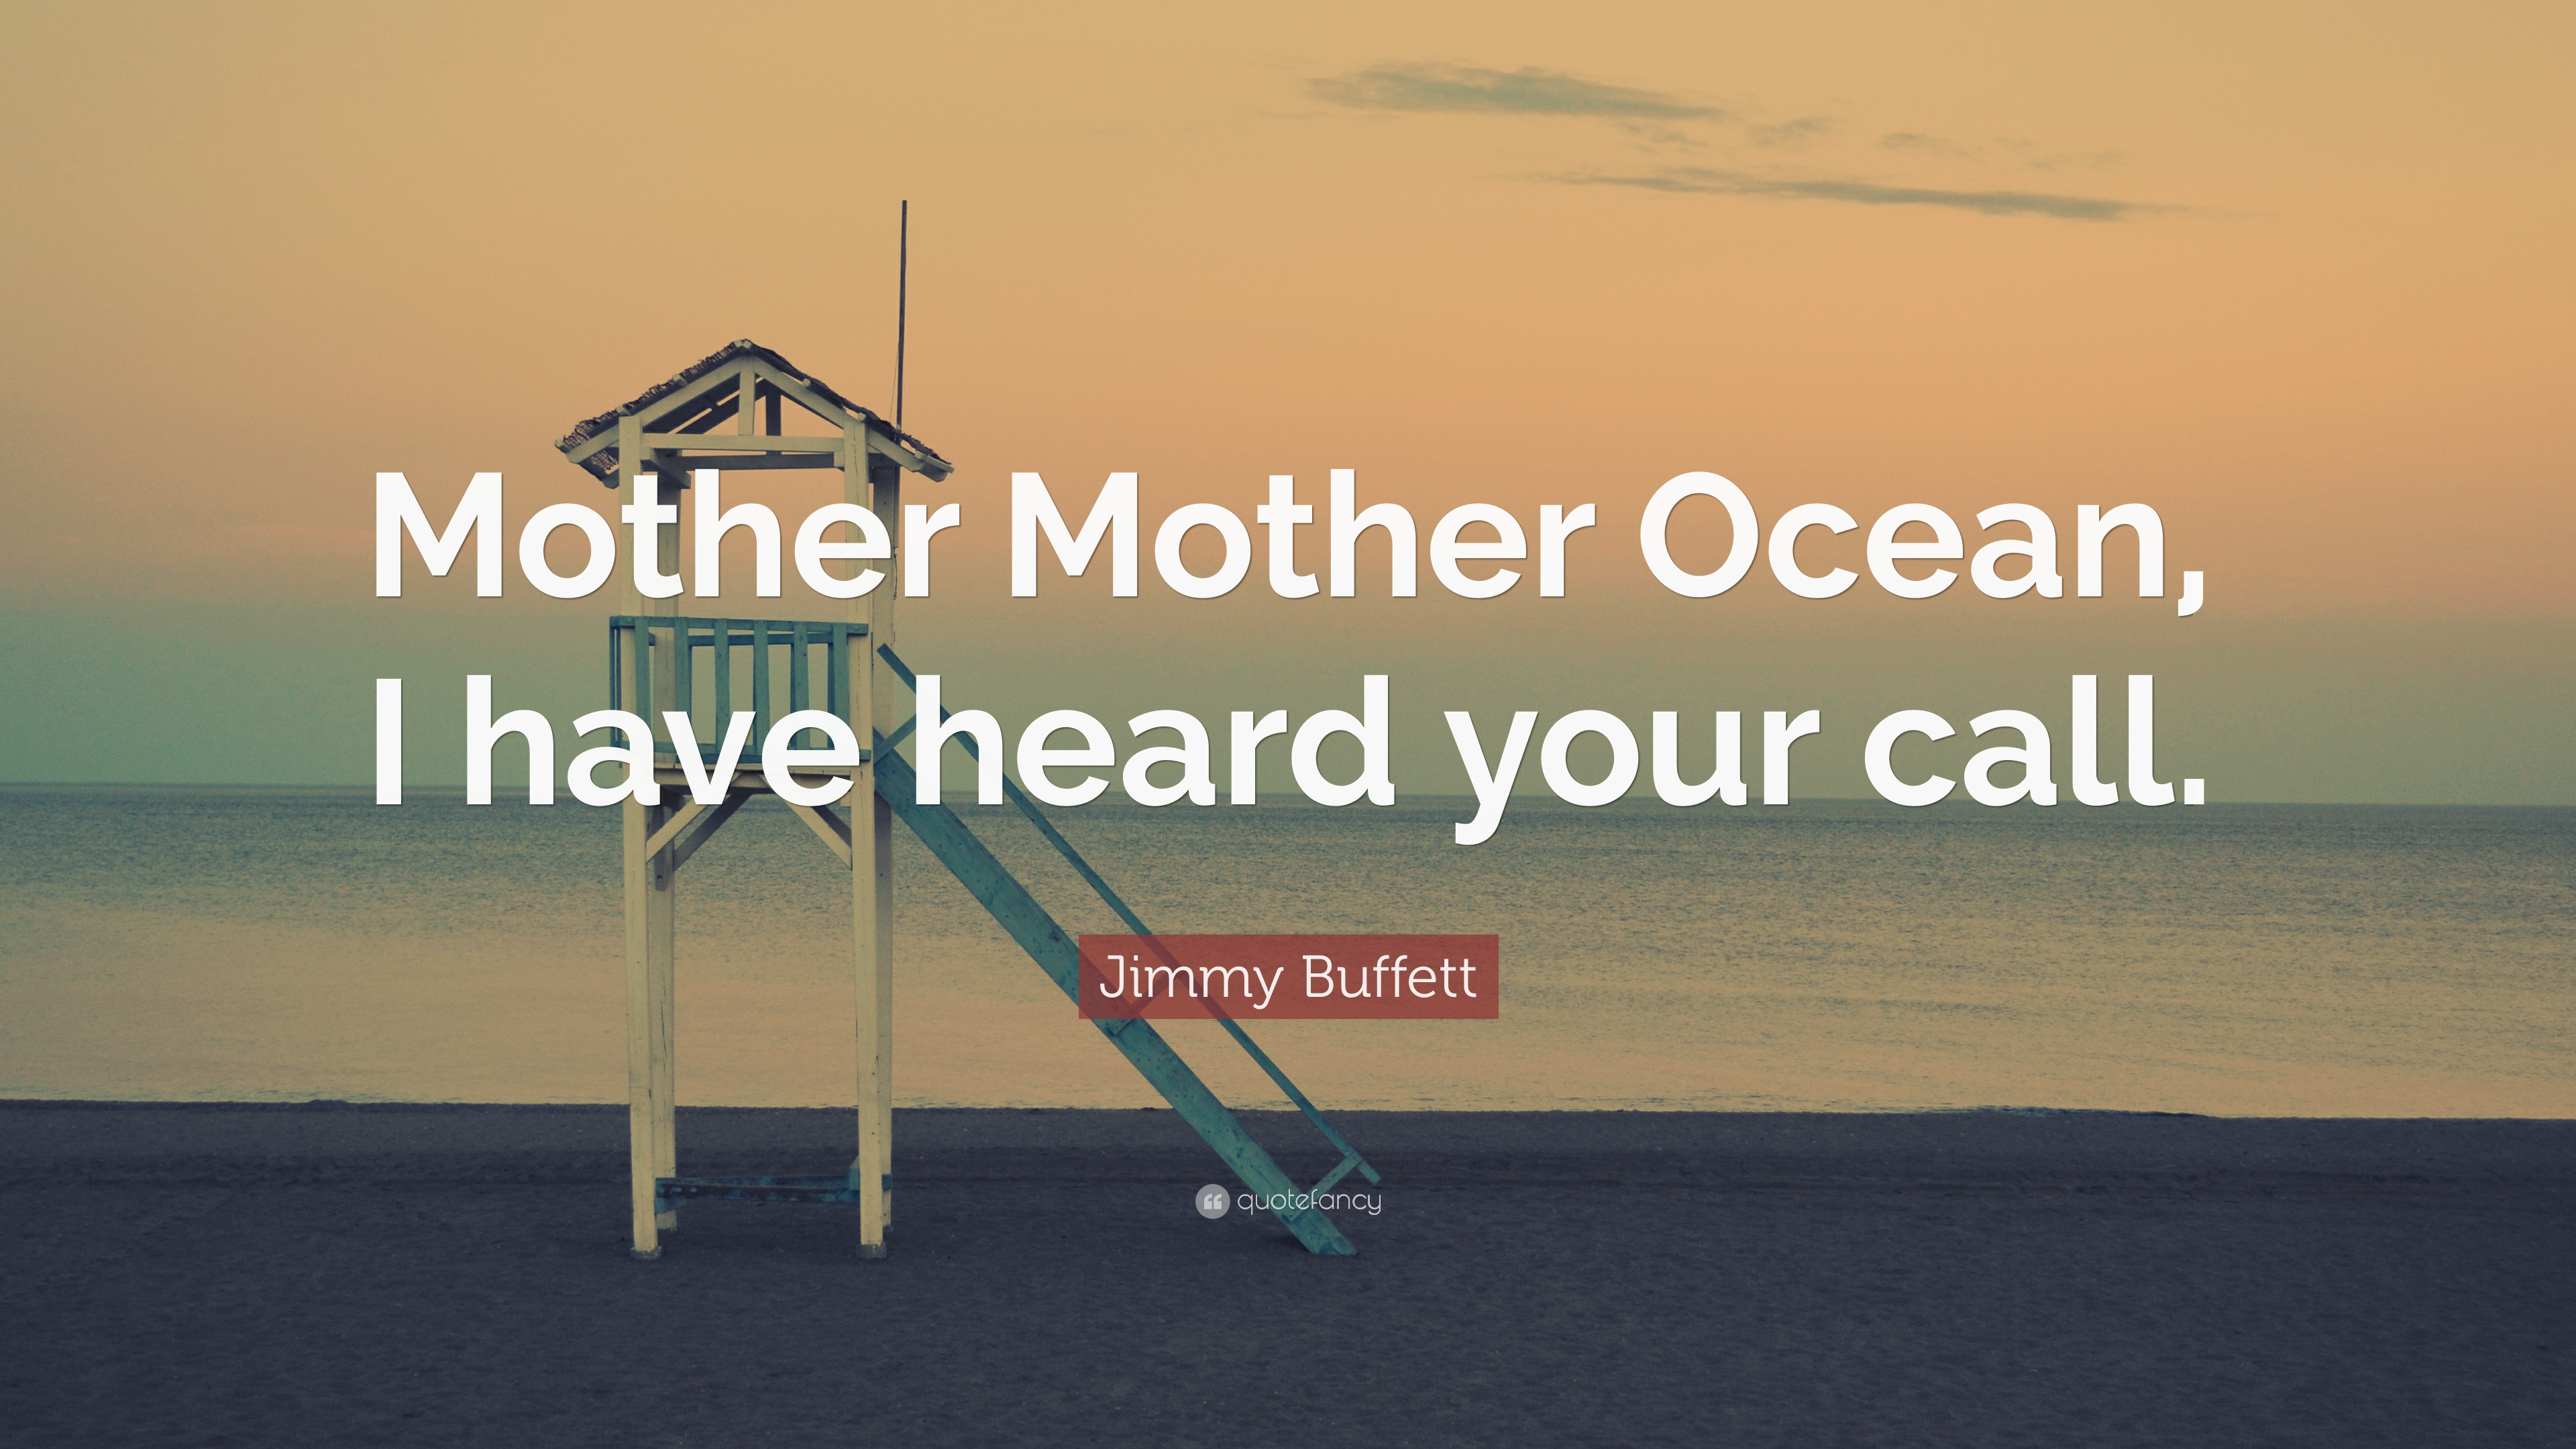 Images Of Jimmy Buffett Quotes Wallpaper Calto